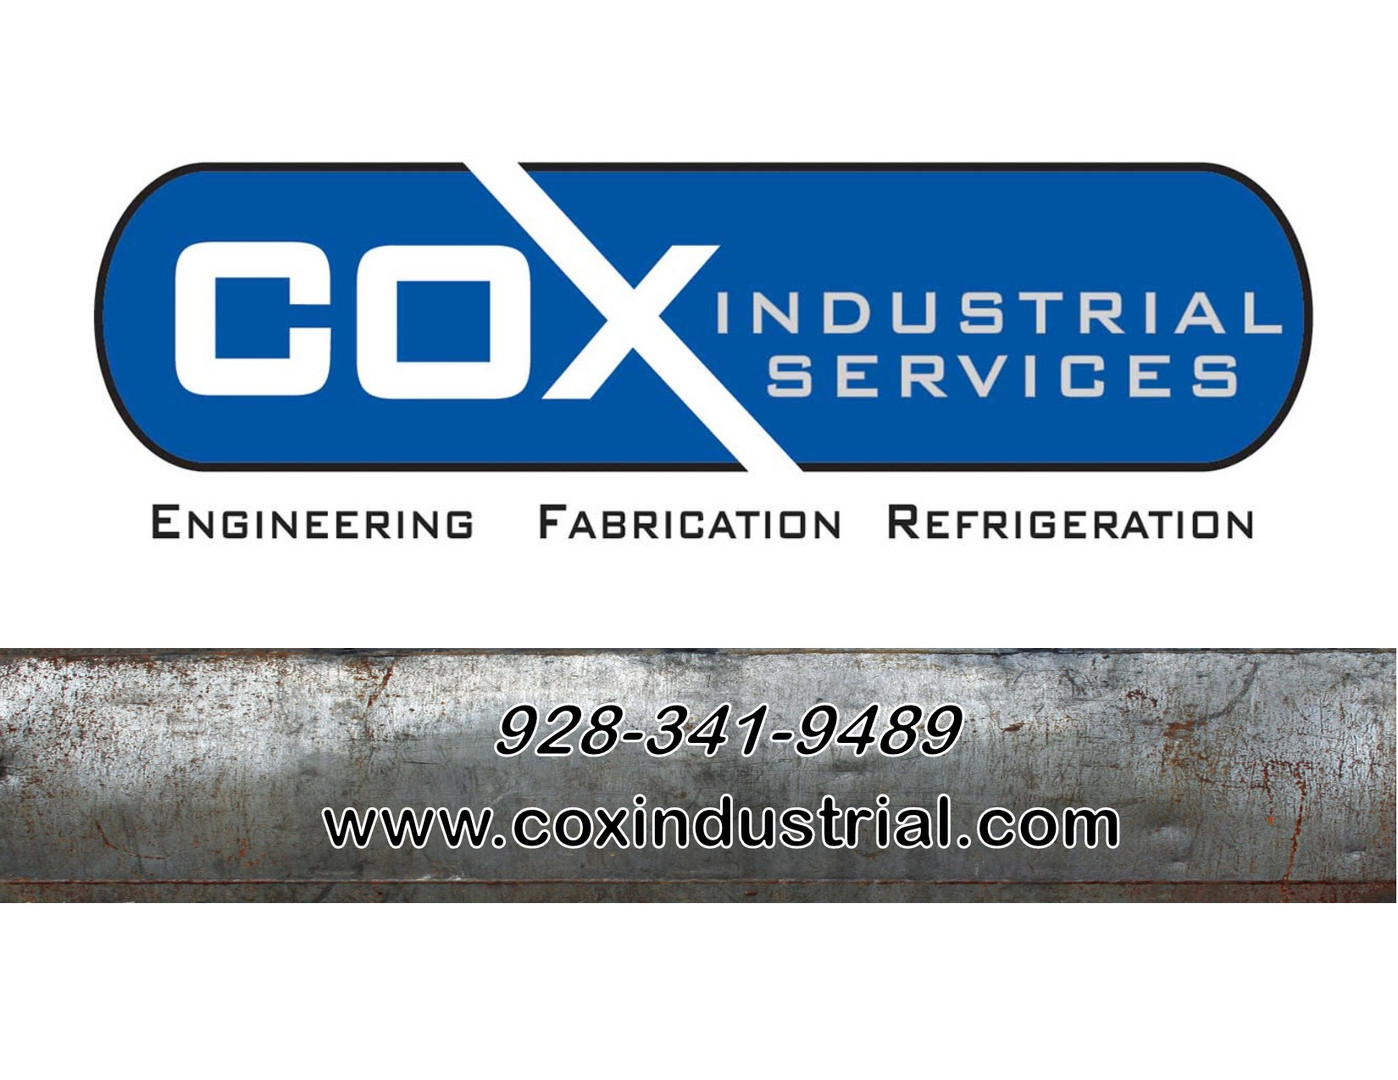 COX Industrial Services